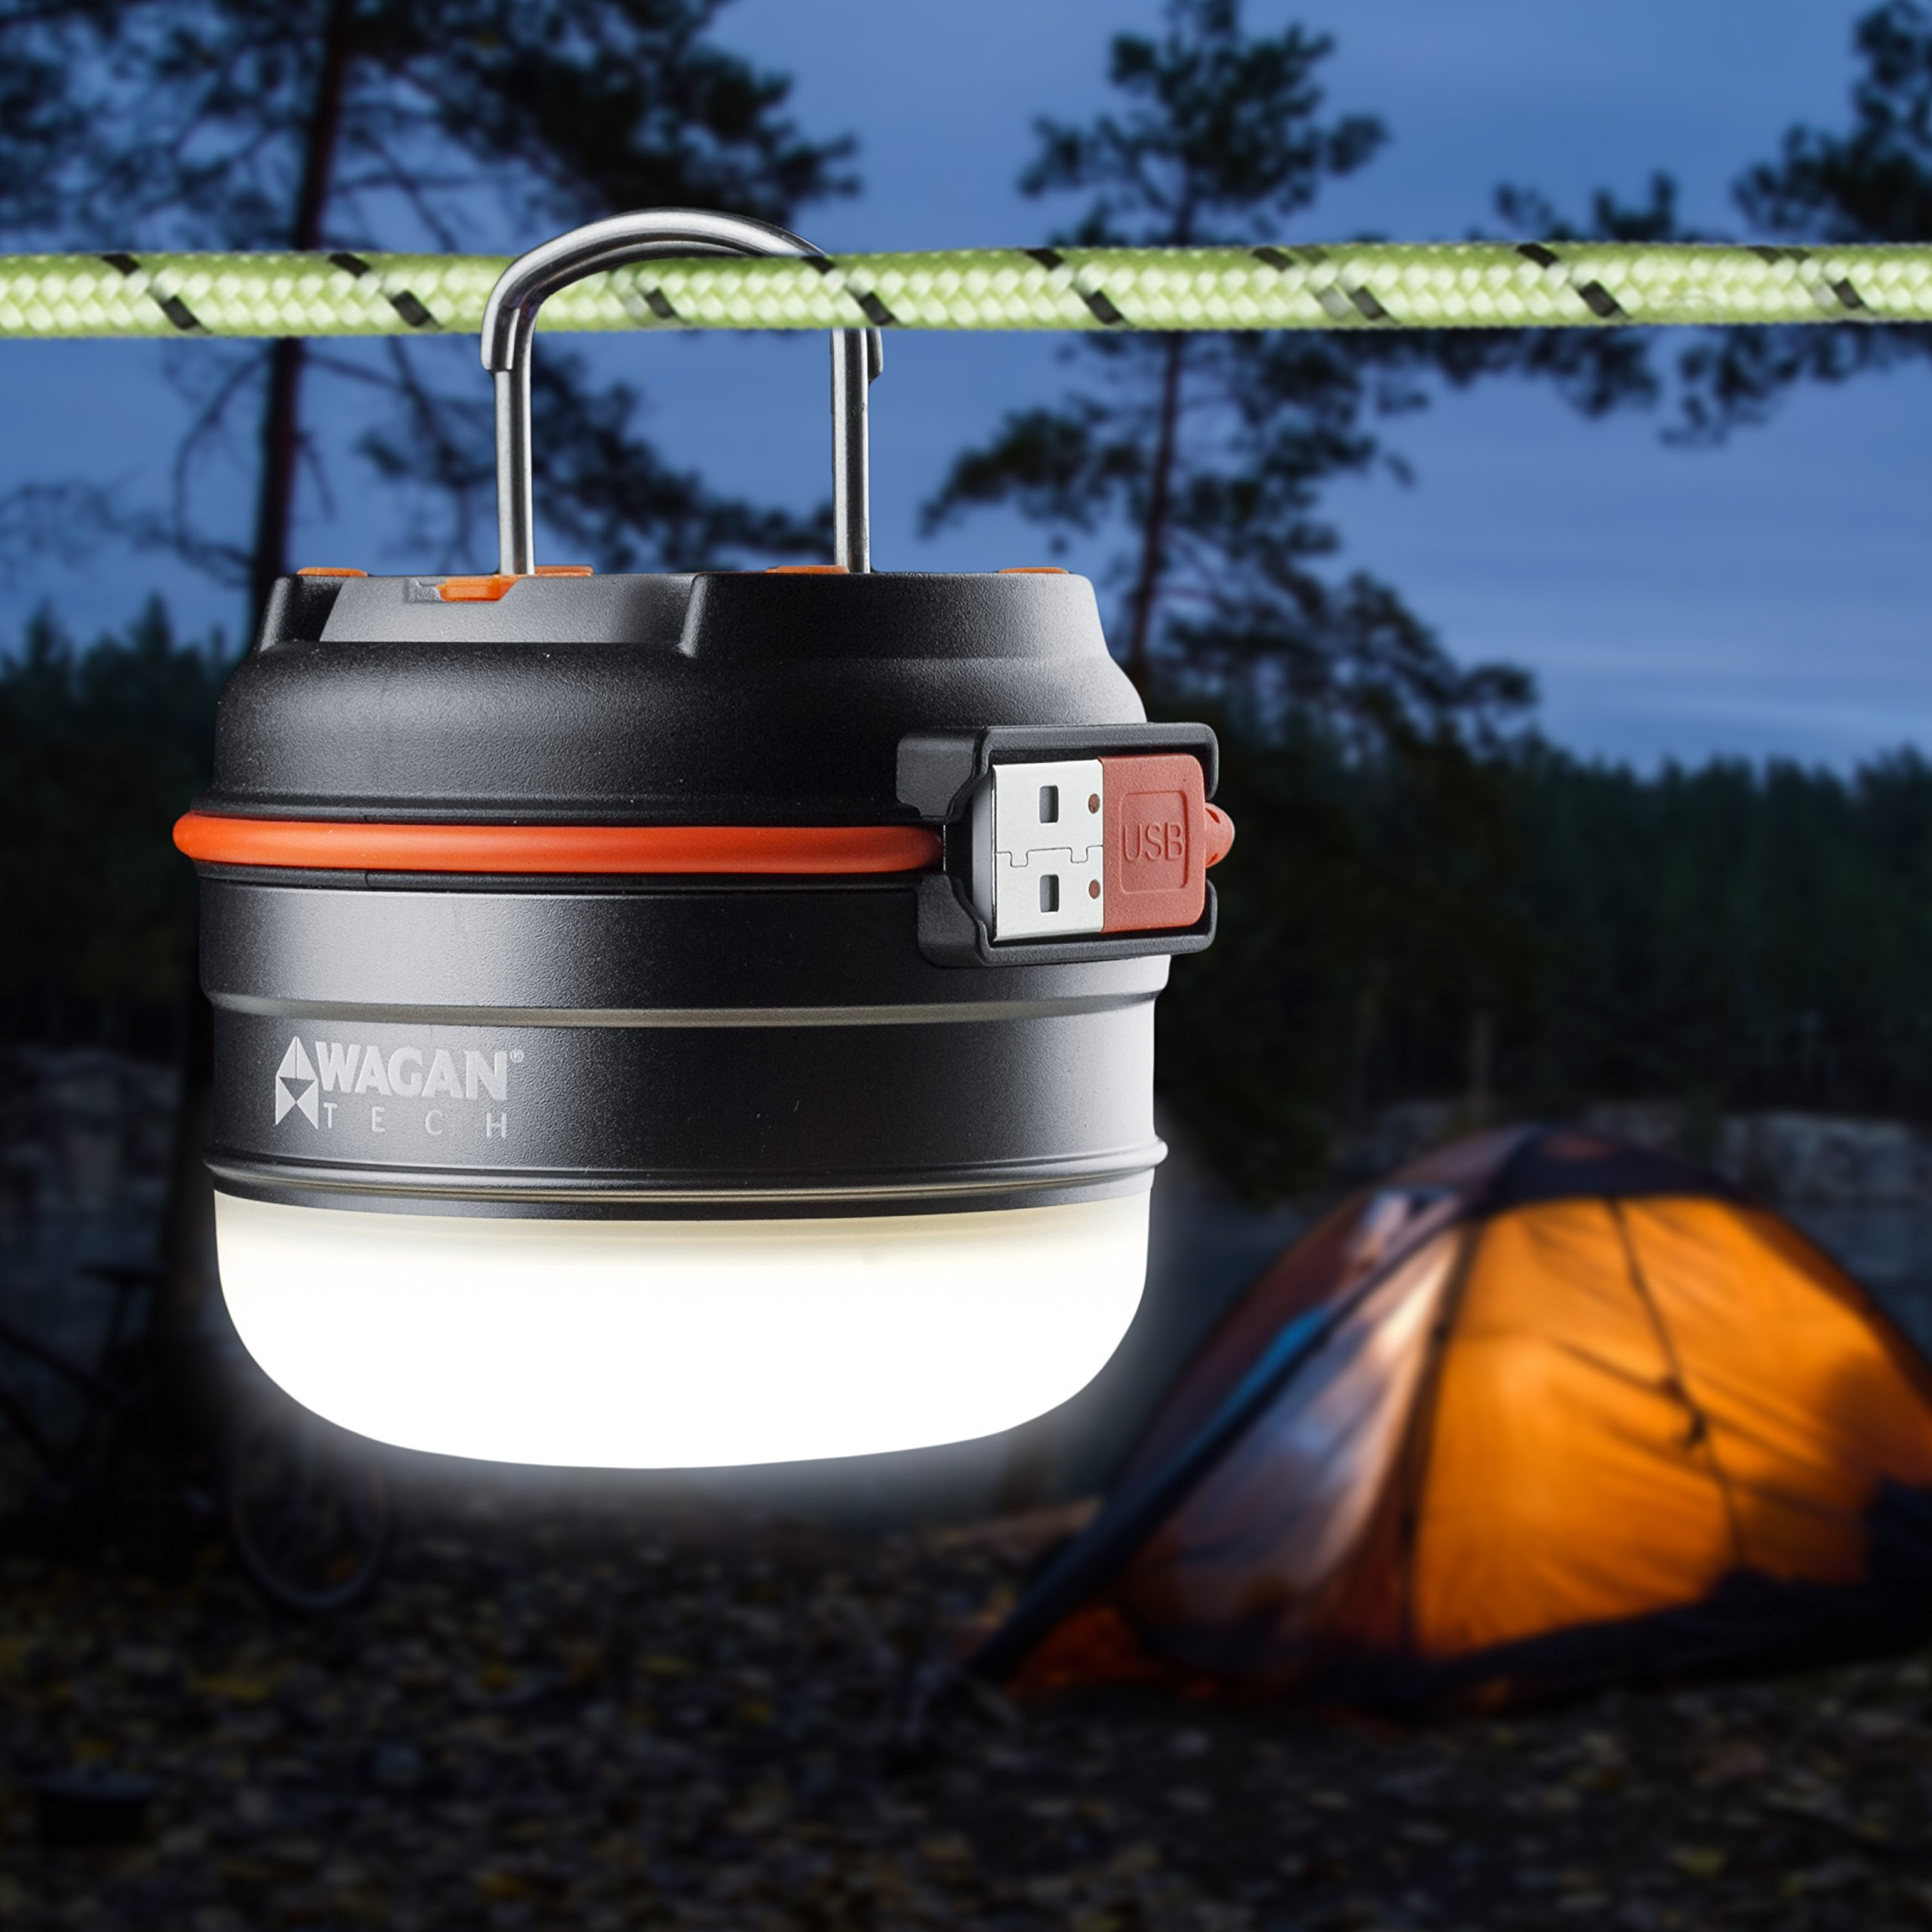 Wagan 4302 Camplites 3000mAh Rechargeable 220lm USB LED Camping Lantern Light Flashlight 2 Hanging Hooks 3 Lighting Options High/Low/SOS for Camping, Hiking, Emergencies, Power Outage by Wagan (Image #3)